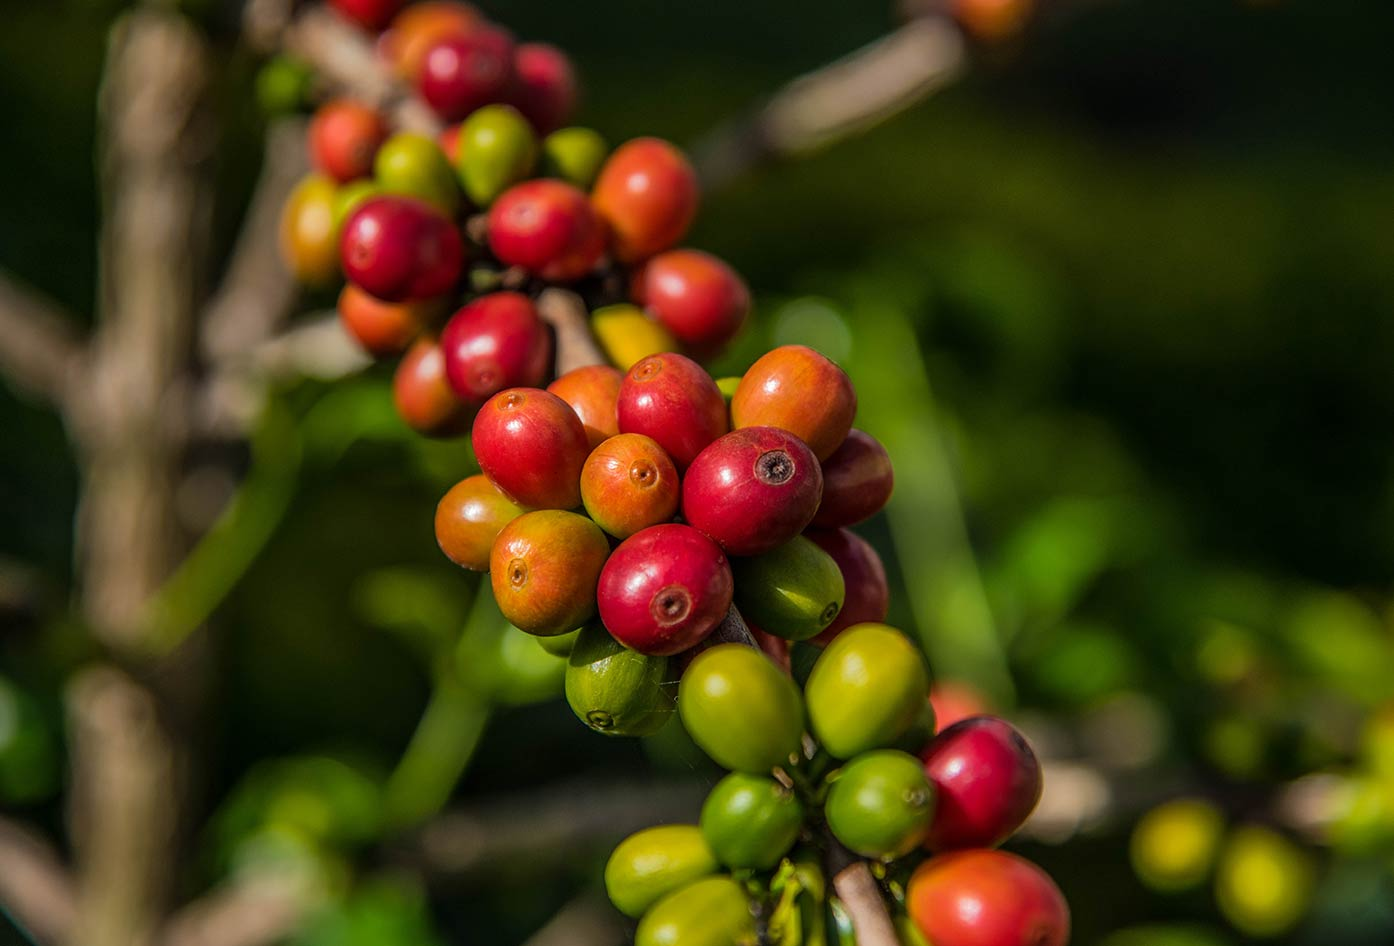 colombian coffee beans on plant